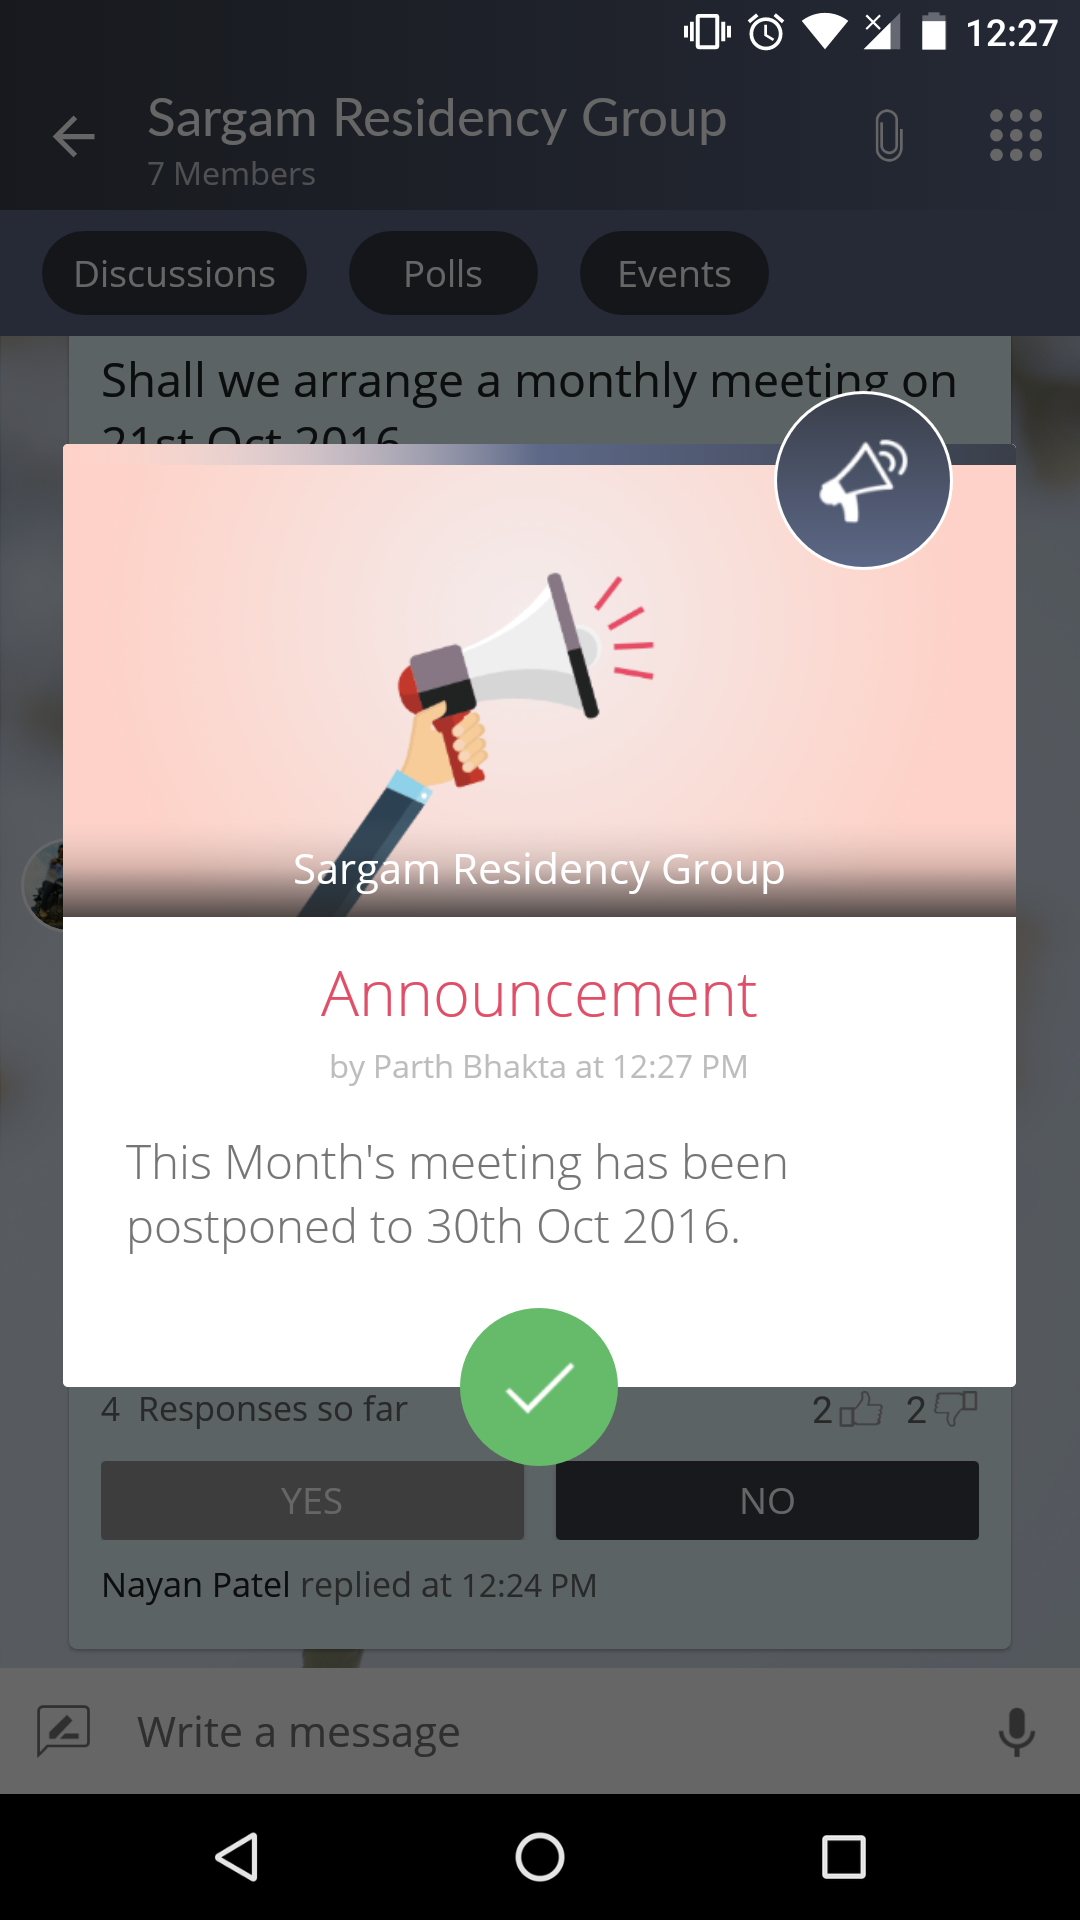 BETTER INTERACTION WITH ANNOUNCEMENTS